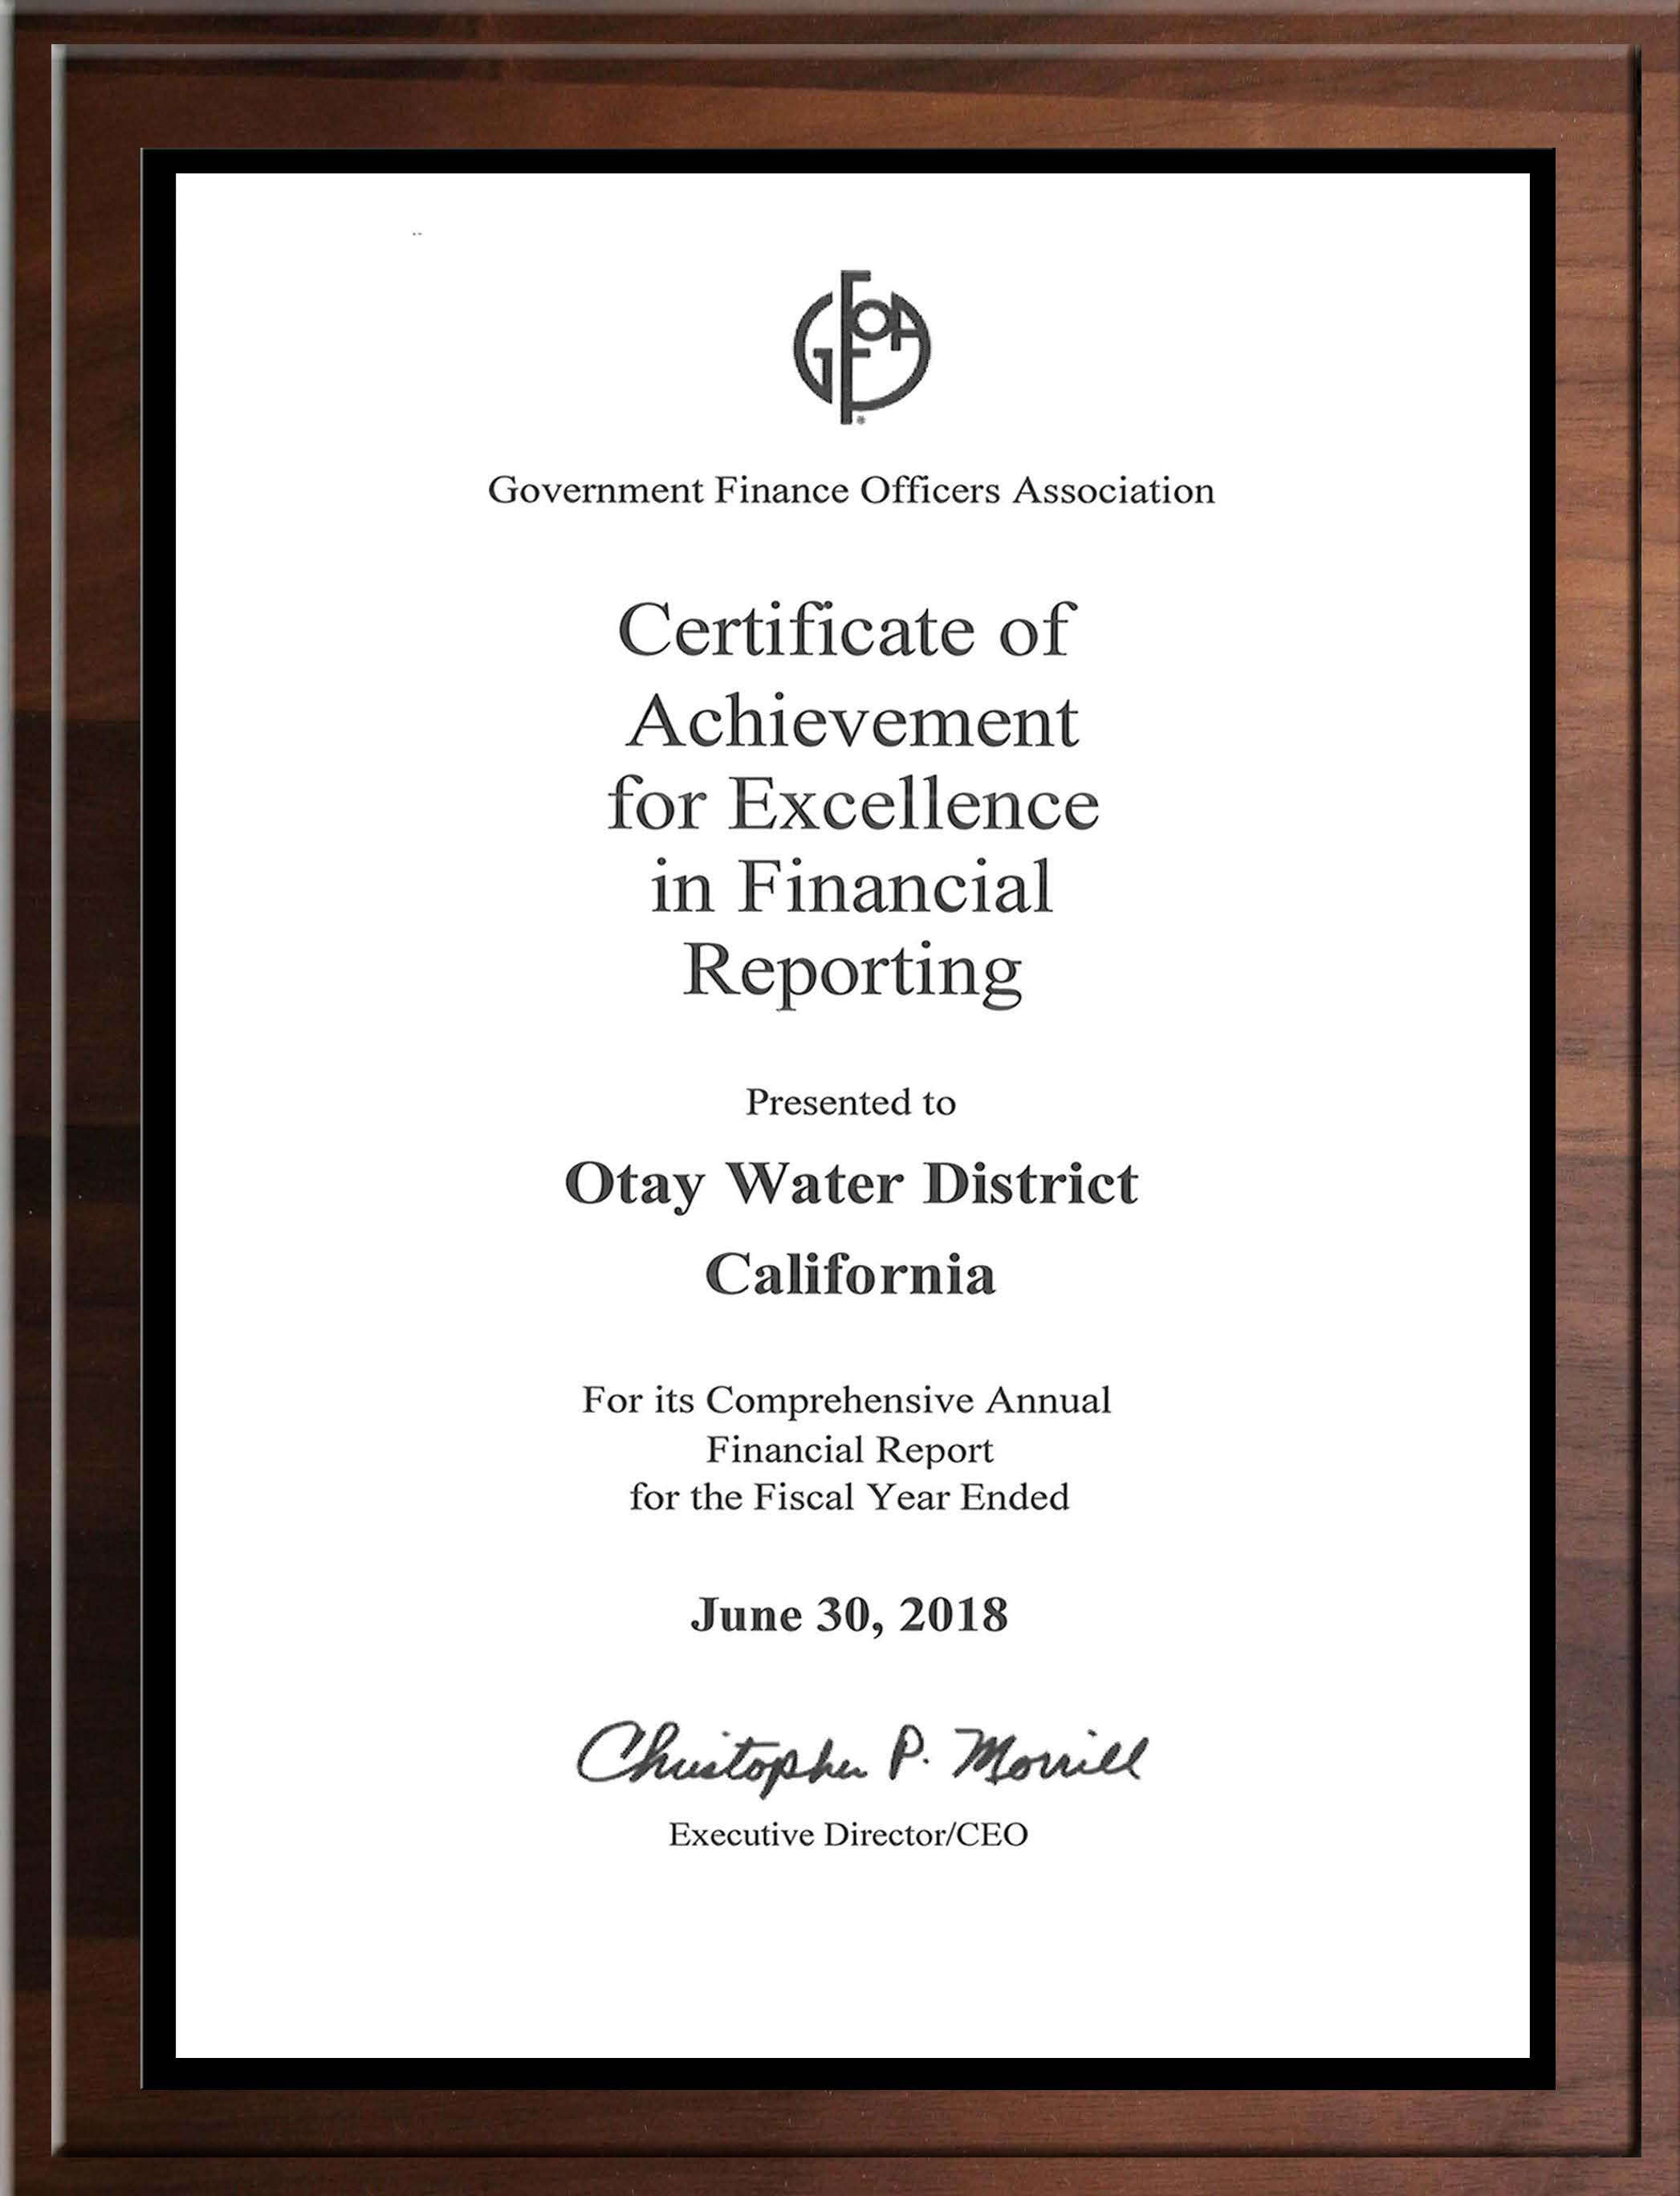 Certificate of Achievement for Excellence in Financial Reporting June 30, 2018